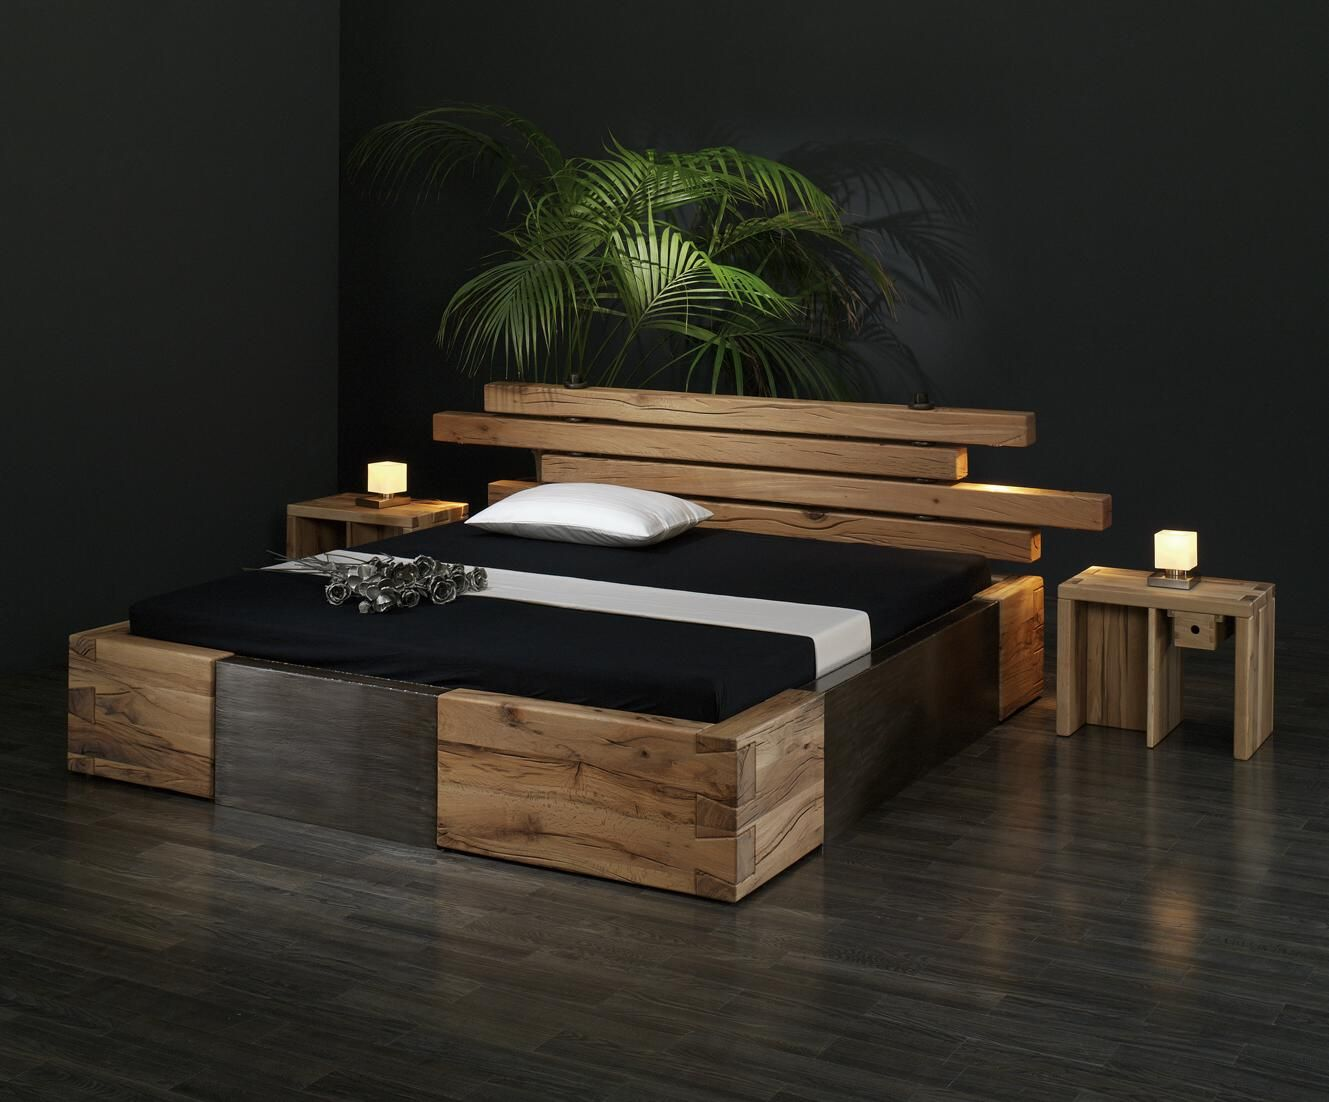 Betten In München Holz Bett Design Google Search Bedroom In 2019 Pinterest